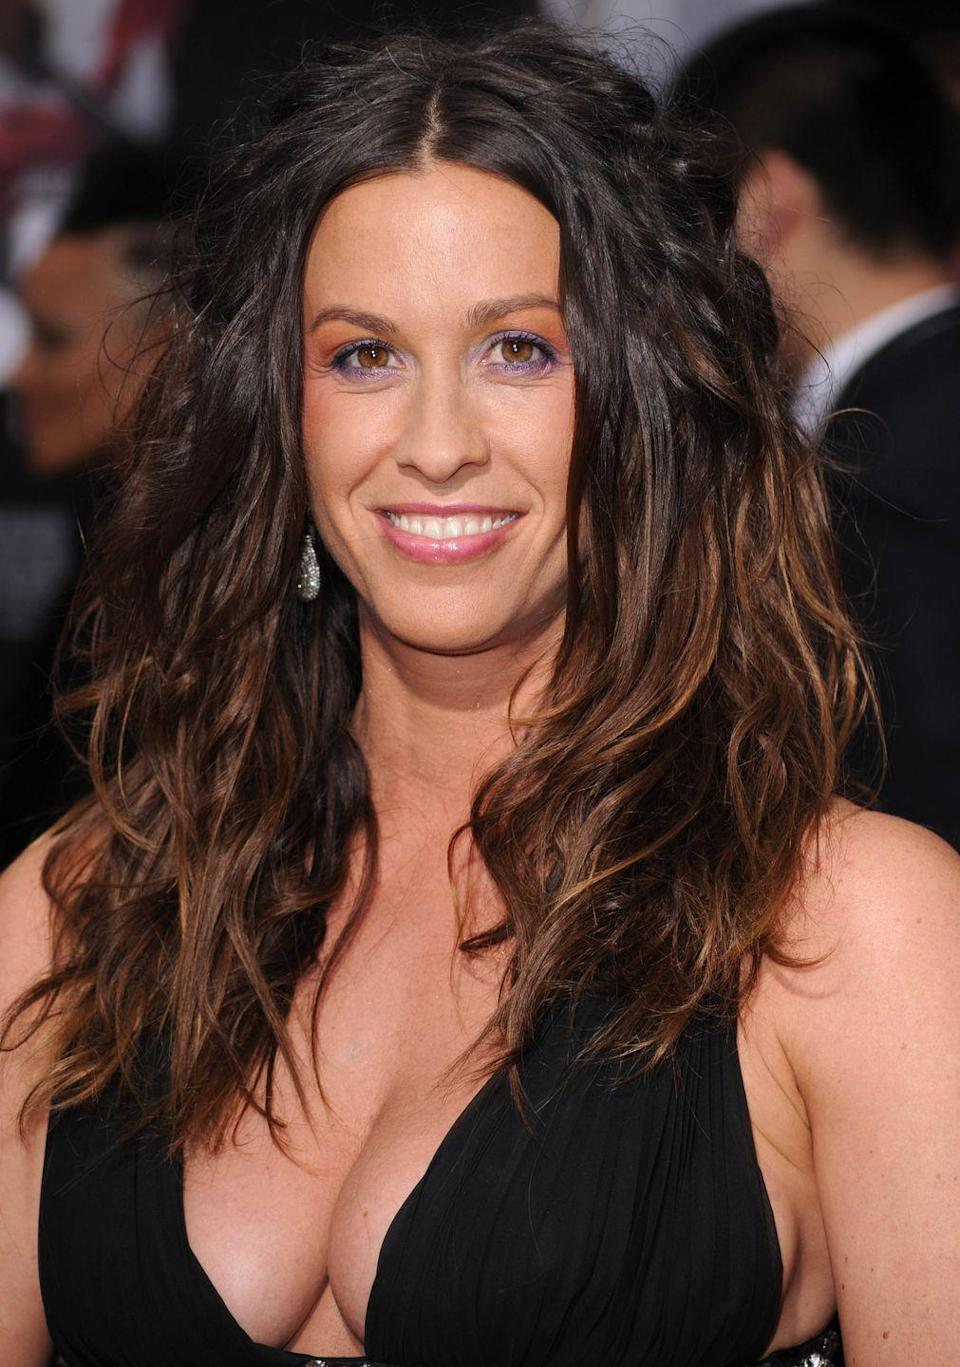 """<p>They say that musical abilities run in the family and for Alanis and her twin brother, Wade, it's true. Many people don't know that Alanis and Wade have collaborated together over the years. Wade also works as a yoga instructor and <a href=""""https://layoga.com/entertainment/music/musical-twins-wade-imre-and-alanis-morissette-share-song-and-yoga/"""" rel=""""nofollow noopener"""" target=""""_blank"""" data-ylk=""""slk:introduced his twin sister"""" class=""""link rapid-noclick-resp"""">introduced his twin sister</a> to the practice.</p>"""